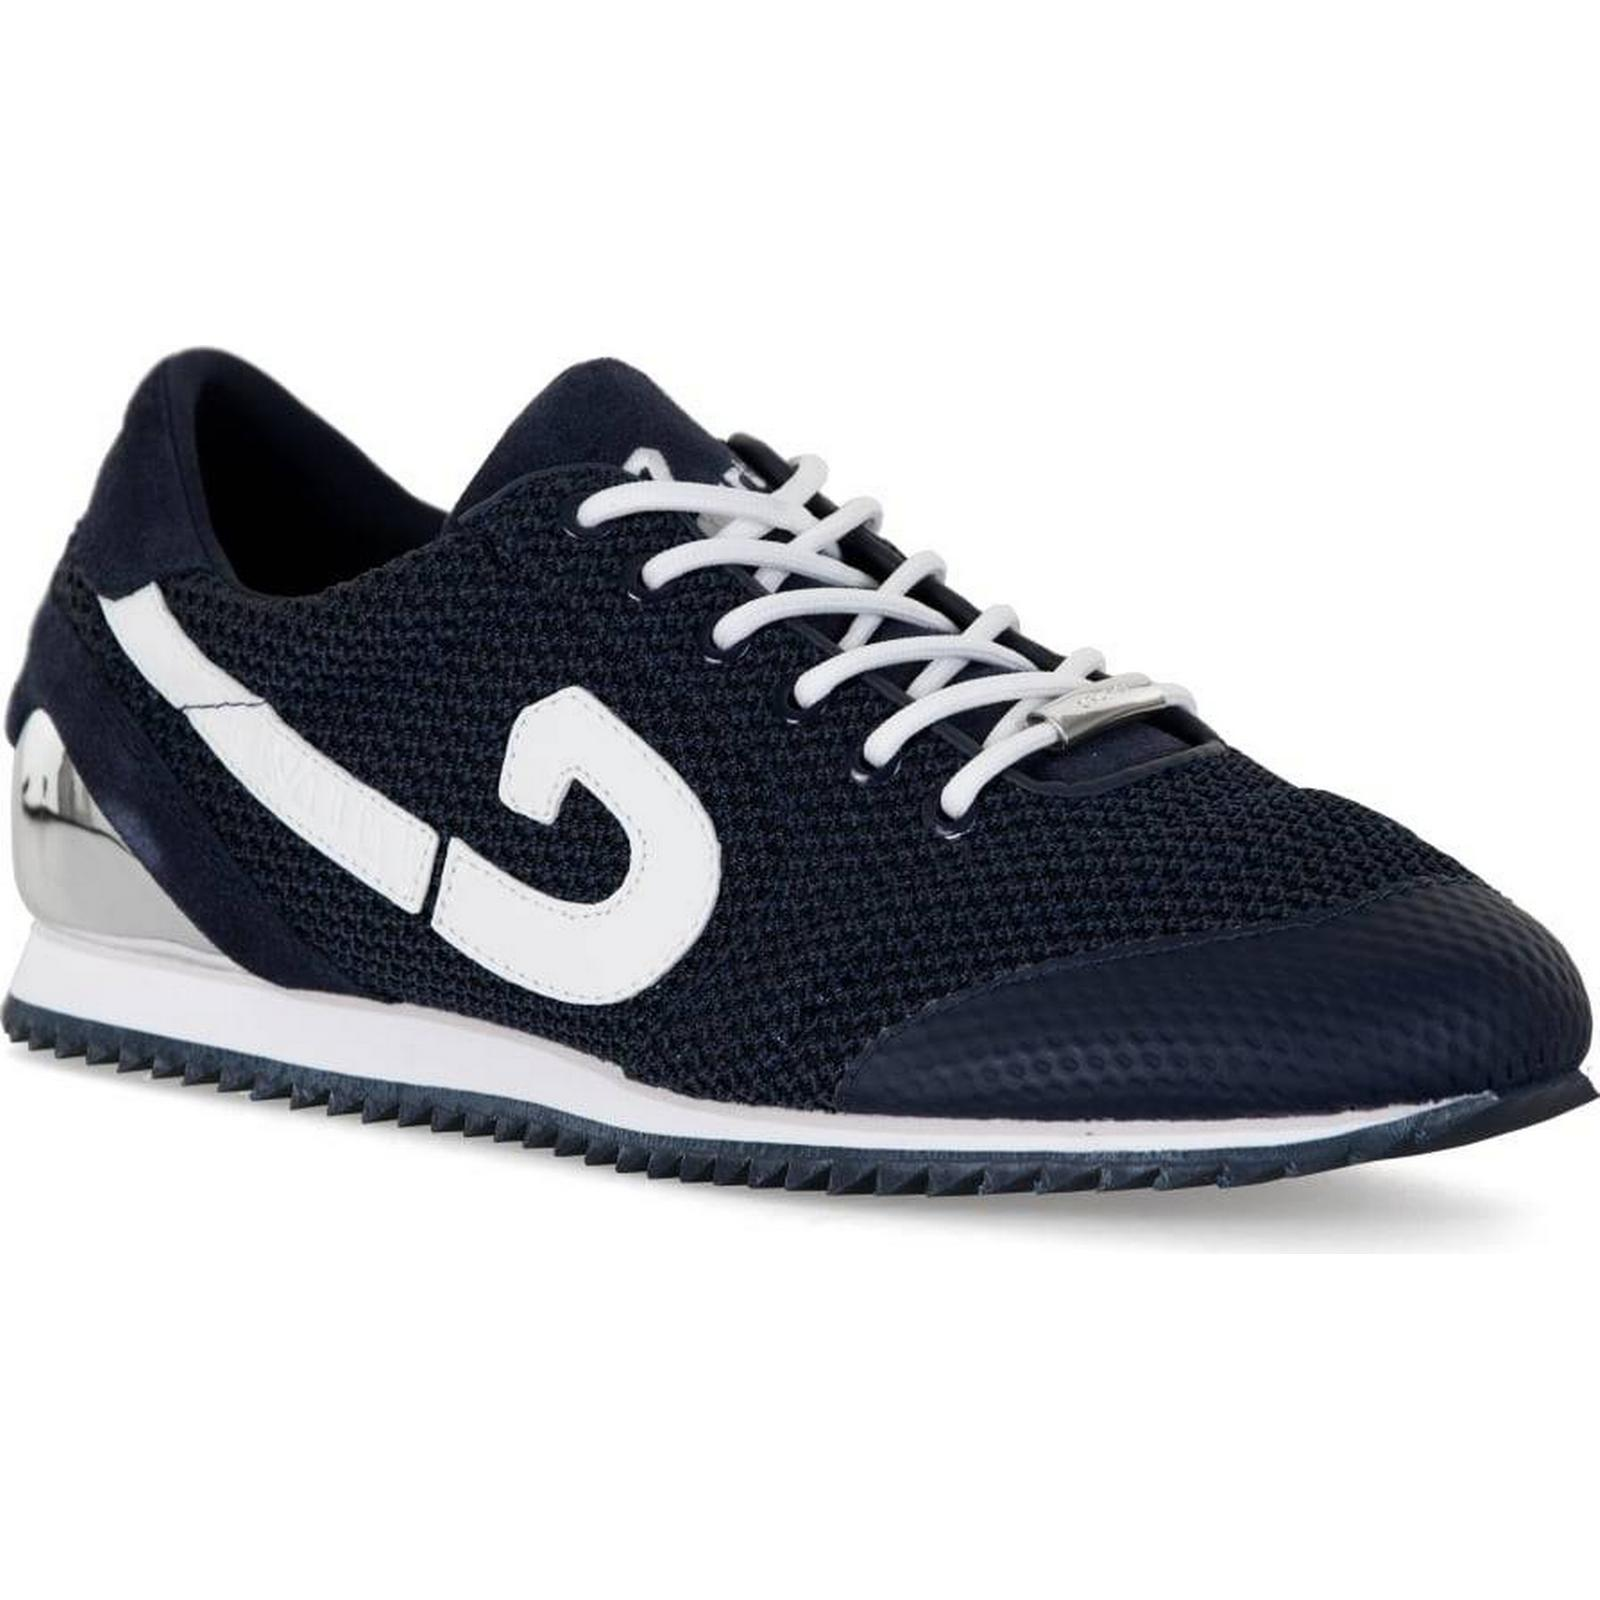 Cruyff Mens Ripple Trainers NAVY (Navy) Size: 7, Colour: NAVY Trainers 97d37a